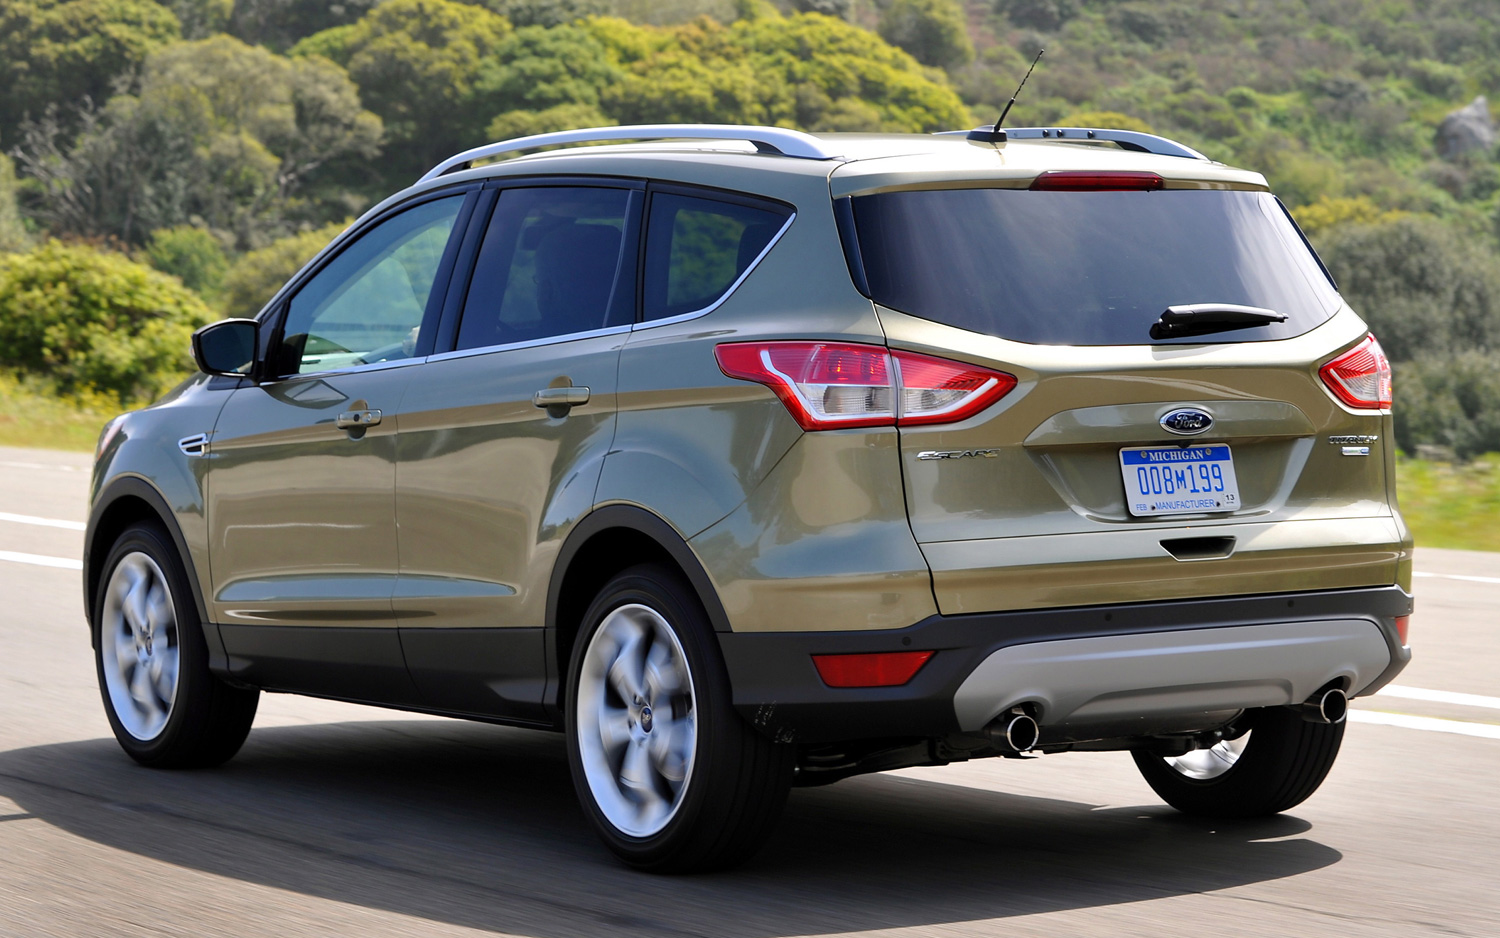 Ford Escape World Of Cars Ford Escape Information And Reviews